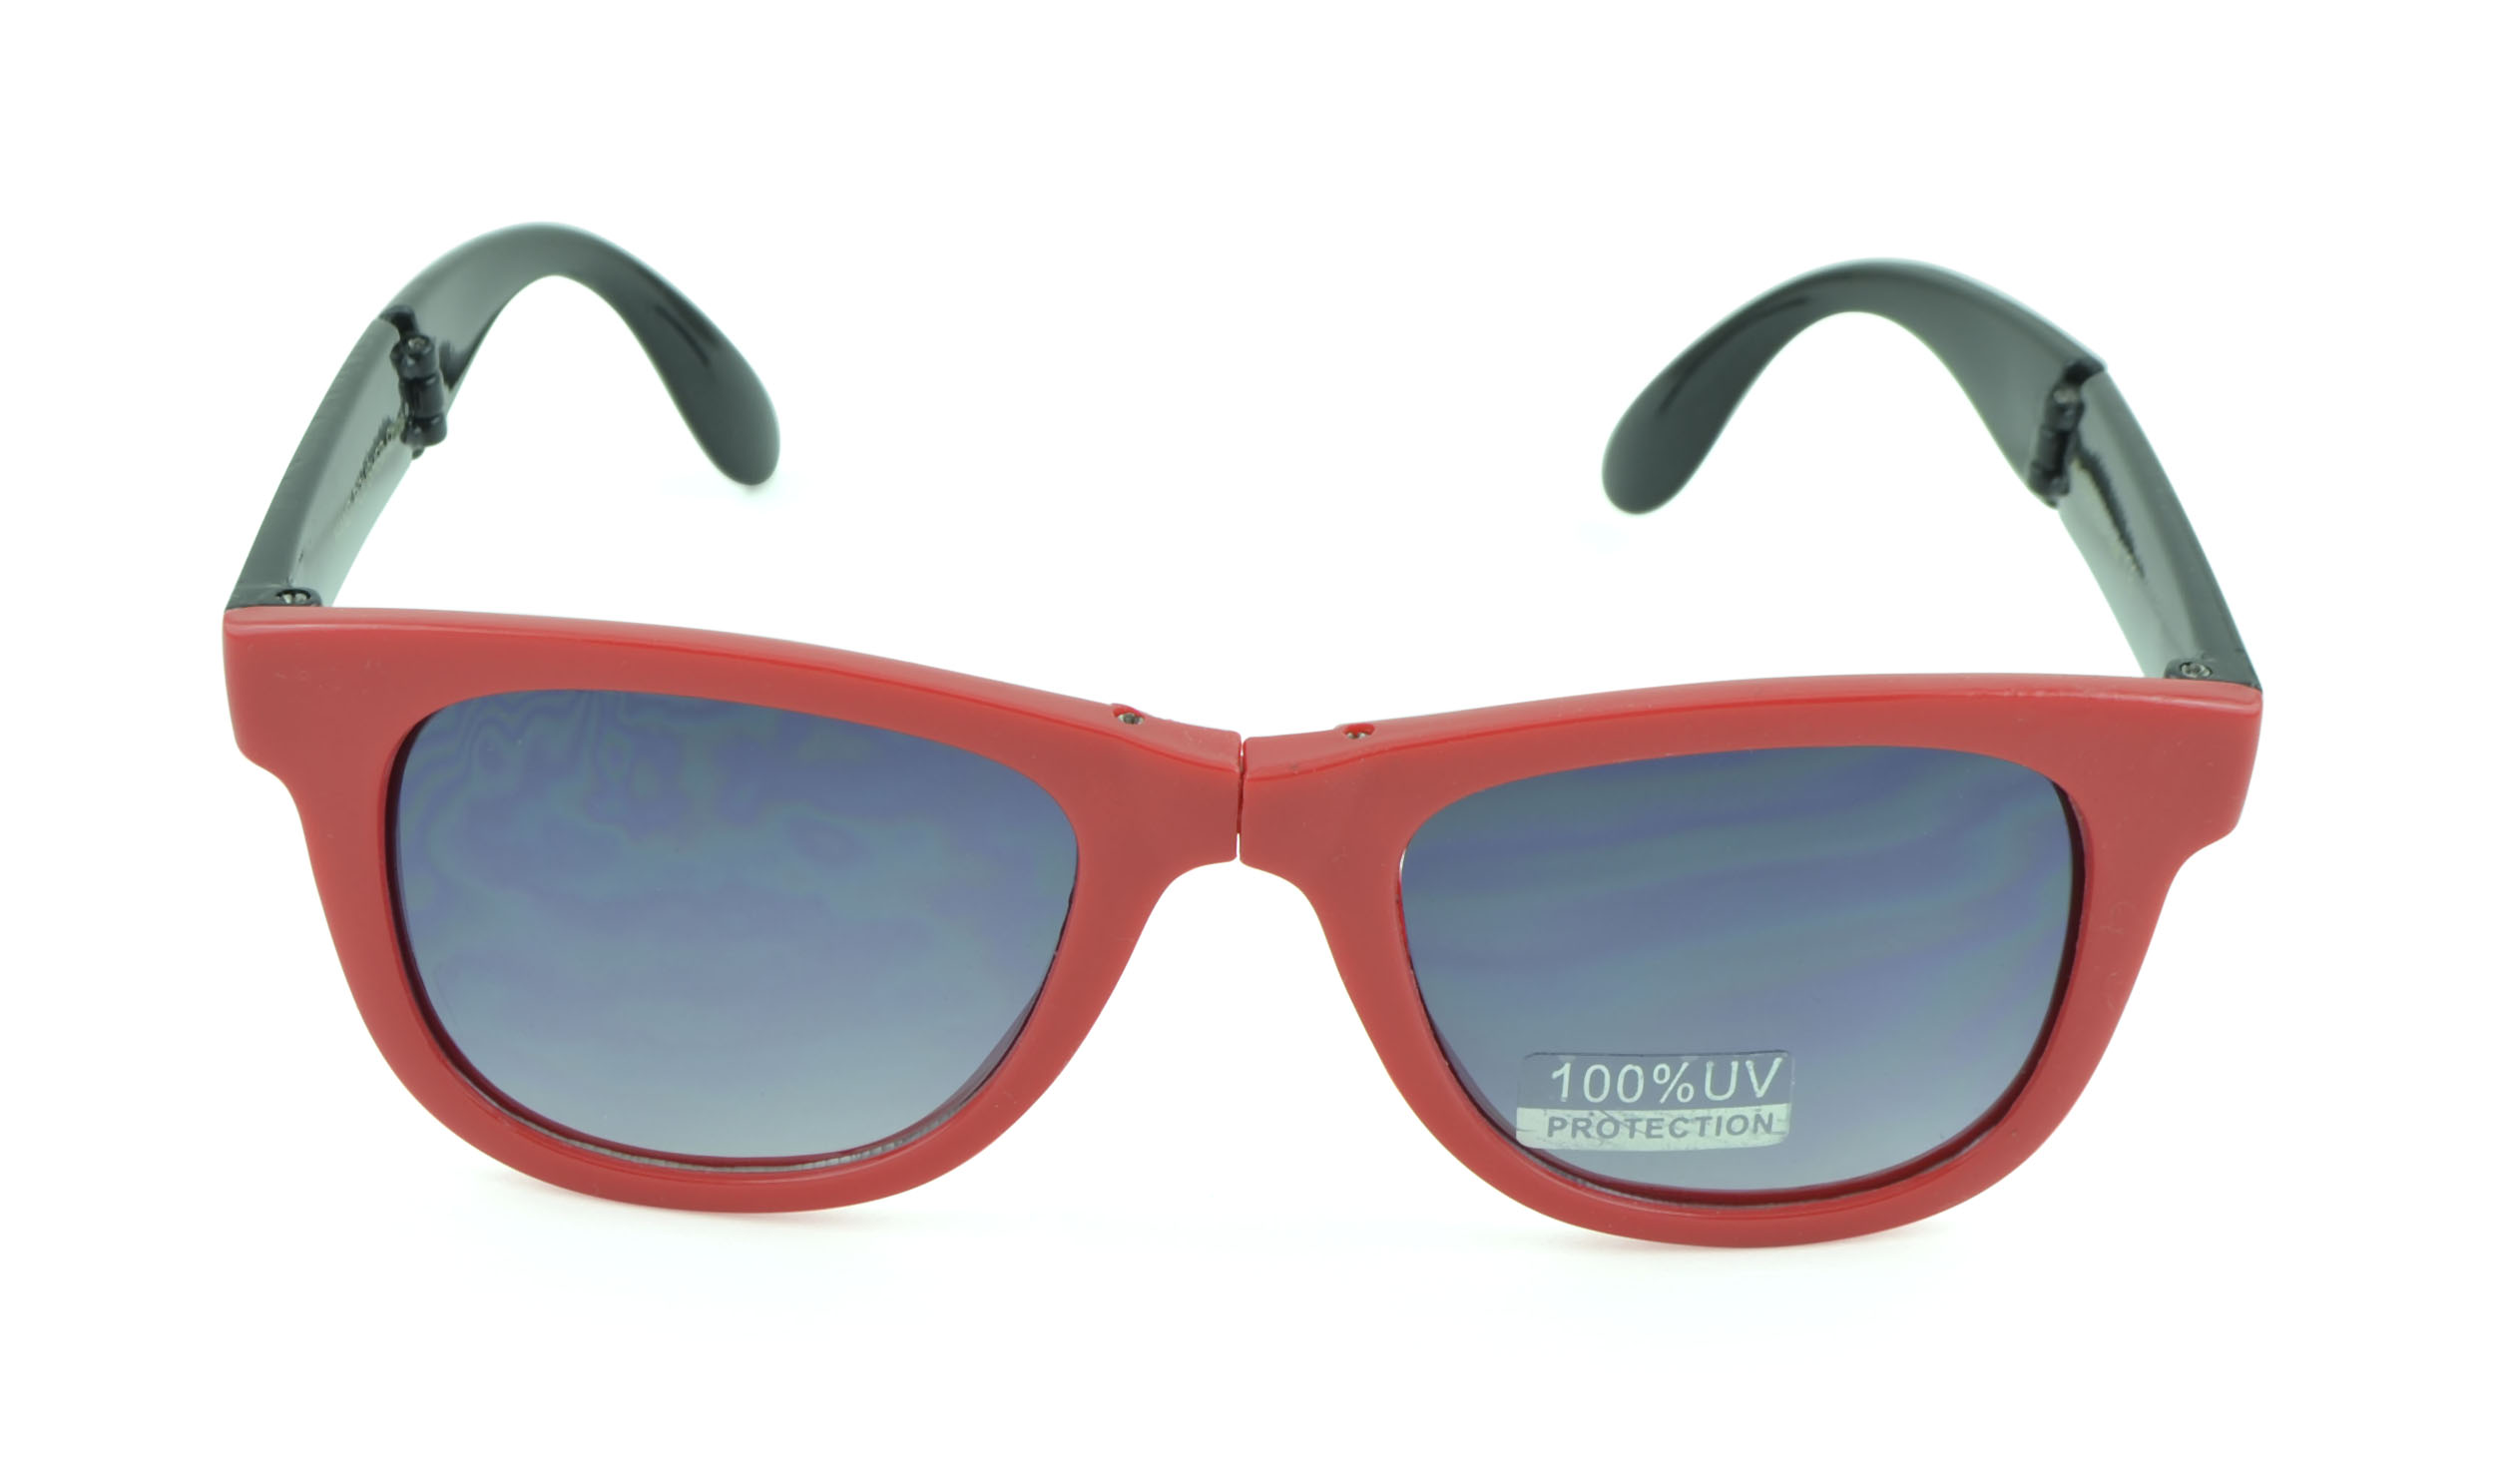 Belle Donne - Mens Womens Classic Fashion Eyewear Foldaway Sunglasses - Red